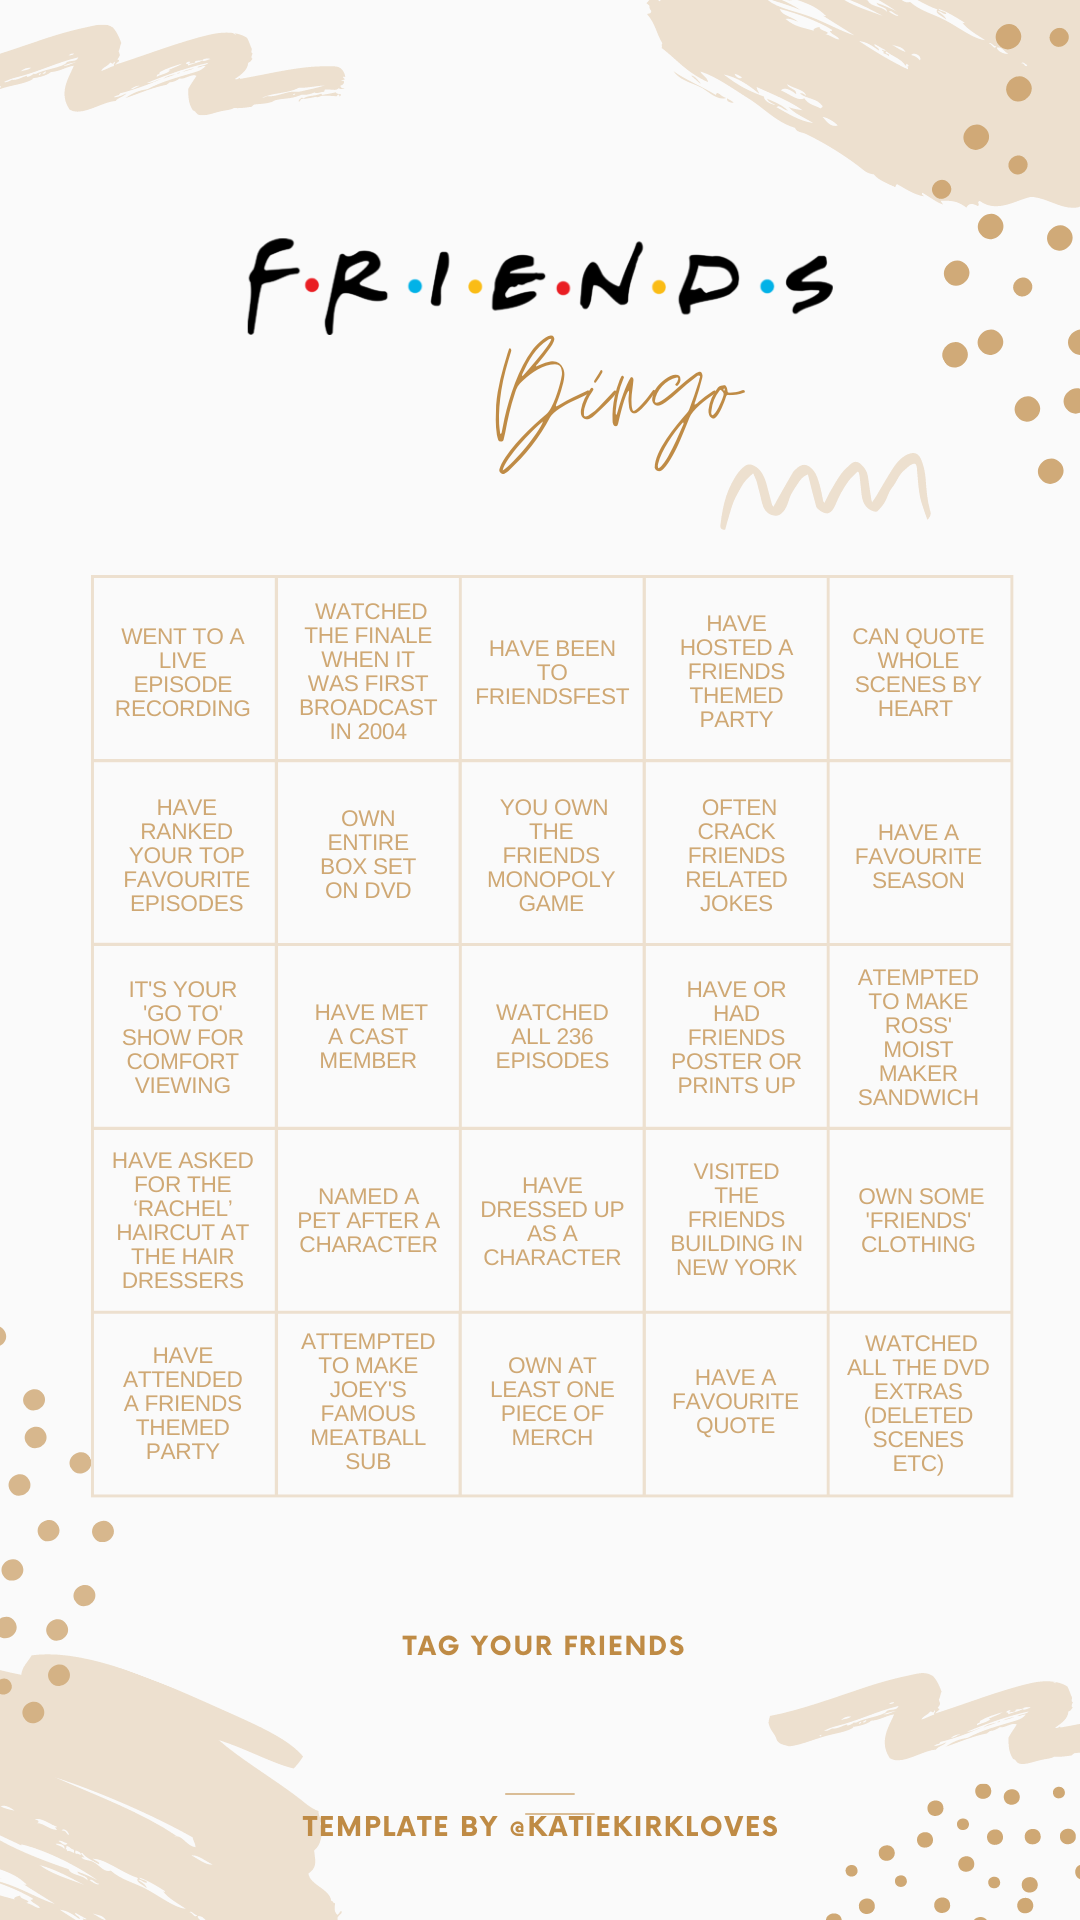 Instagram Story Templates by UK Lifestyle Blogger Katie Kirk Loves, Friends TV Show Themed Story Templates, This or That, Which Friends Character Are You, Which Friends Character Would You Date, Friends Fan Checklist and Friends Bingo. You can use for fun, share them on your Instagram story, fill them in and share with your friends.